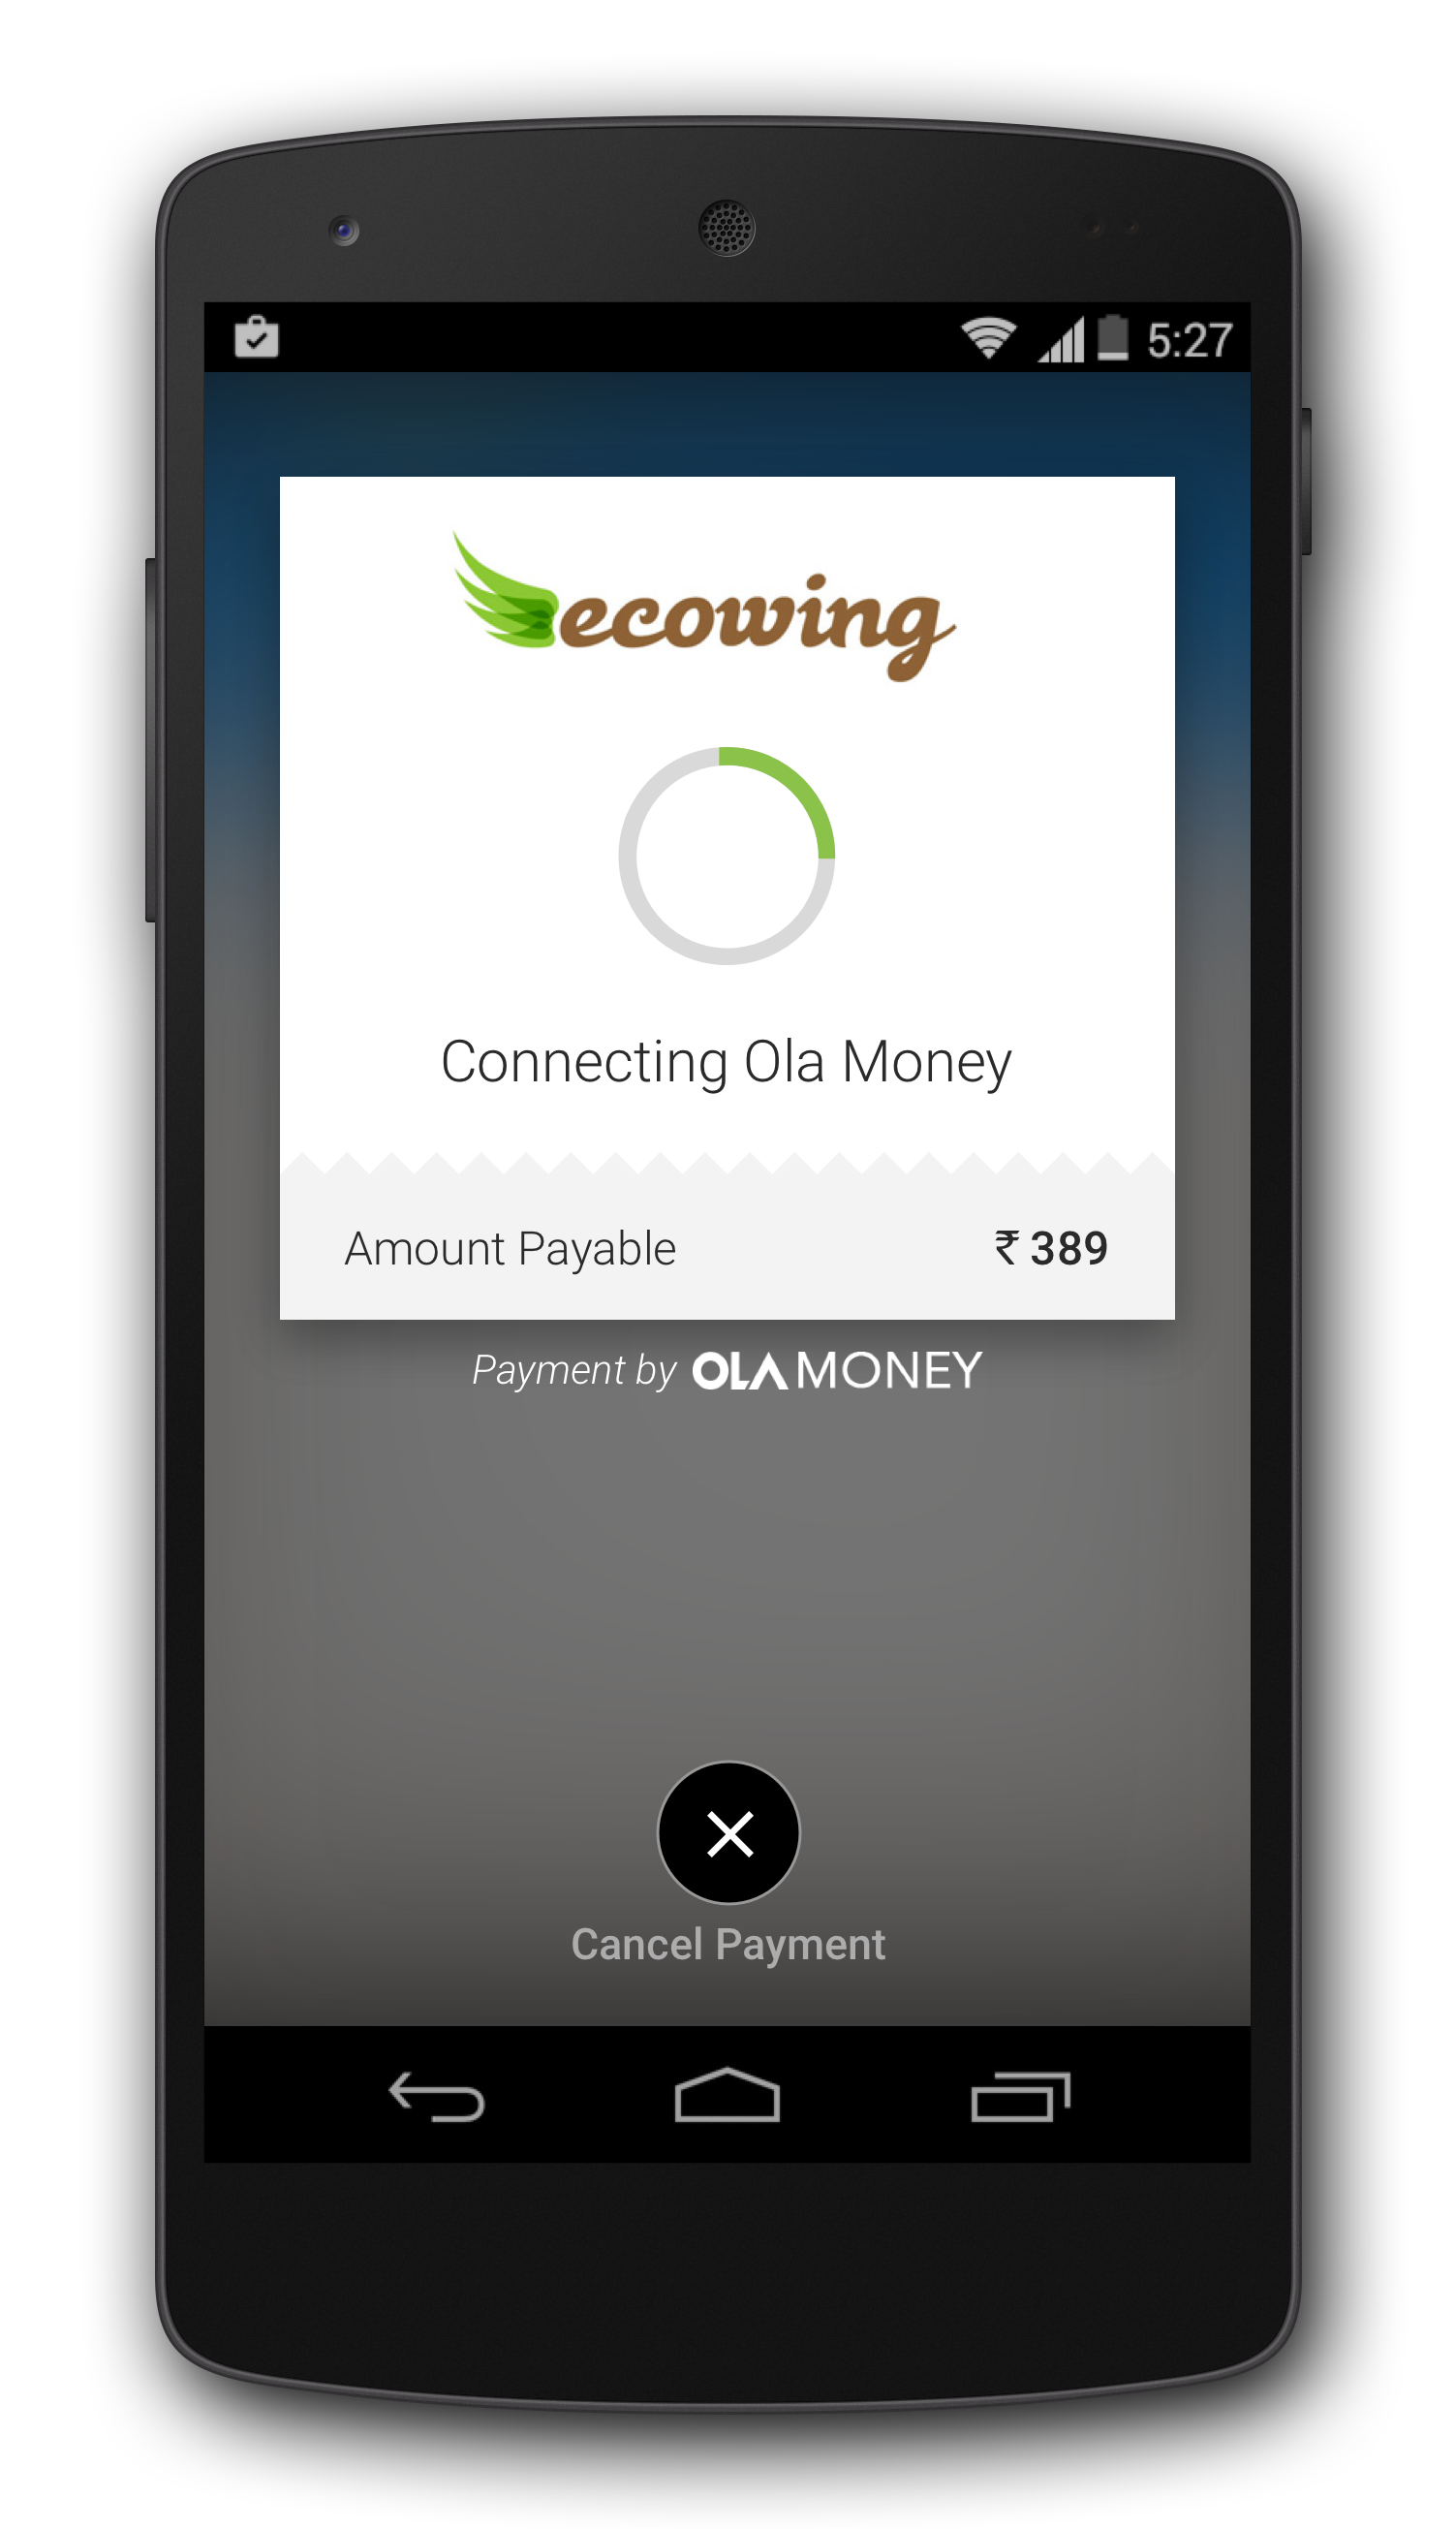 Connect with Ola Money through the Olacabs app